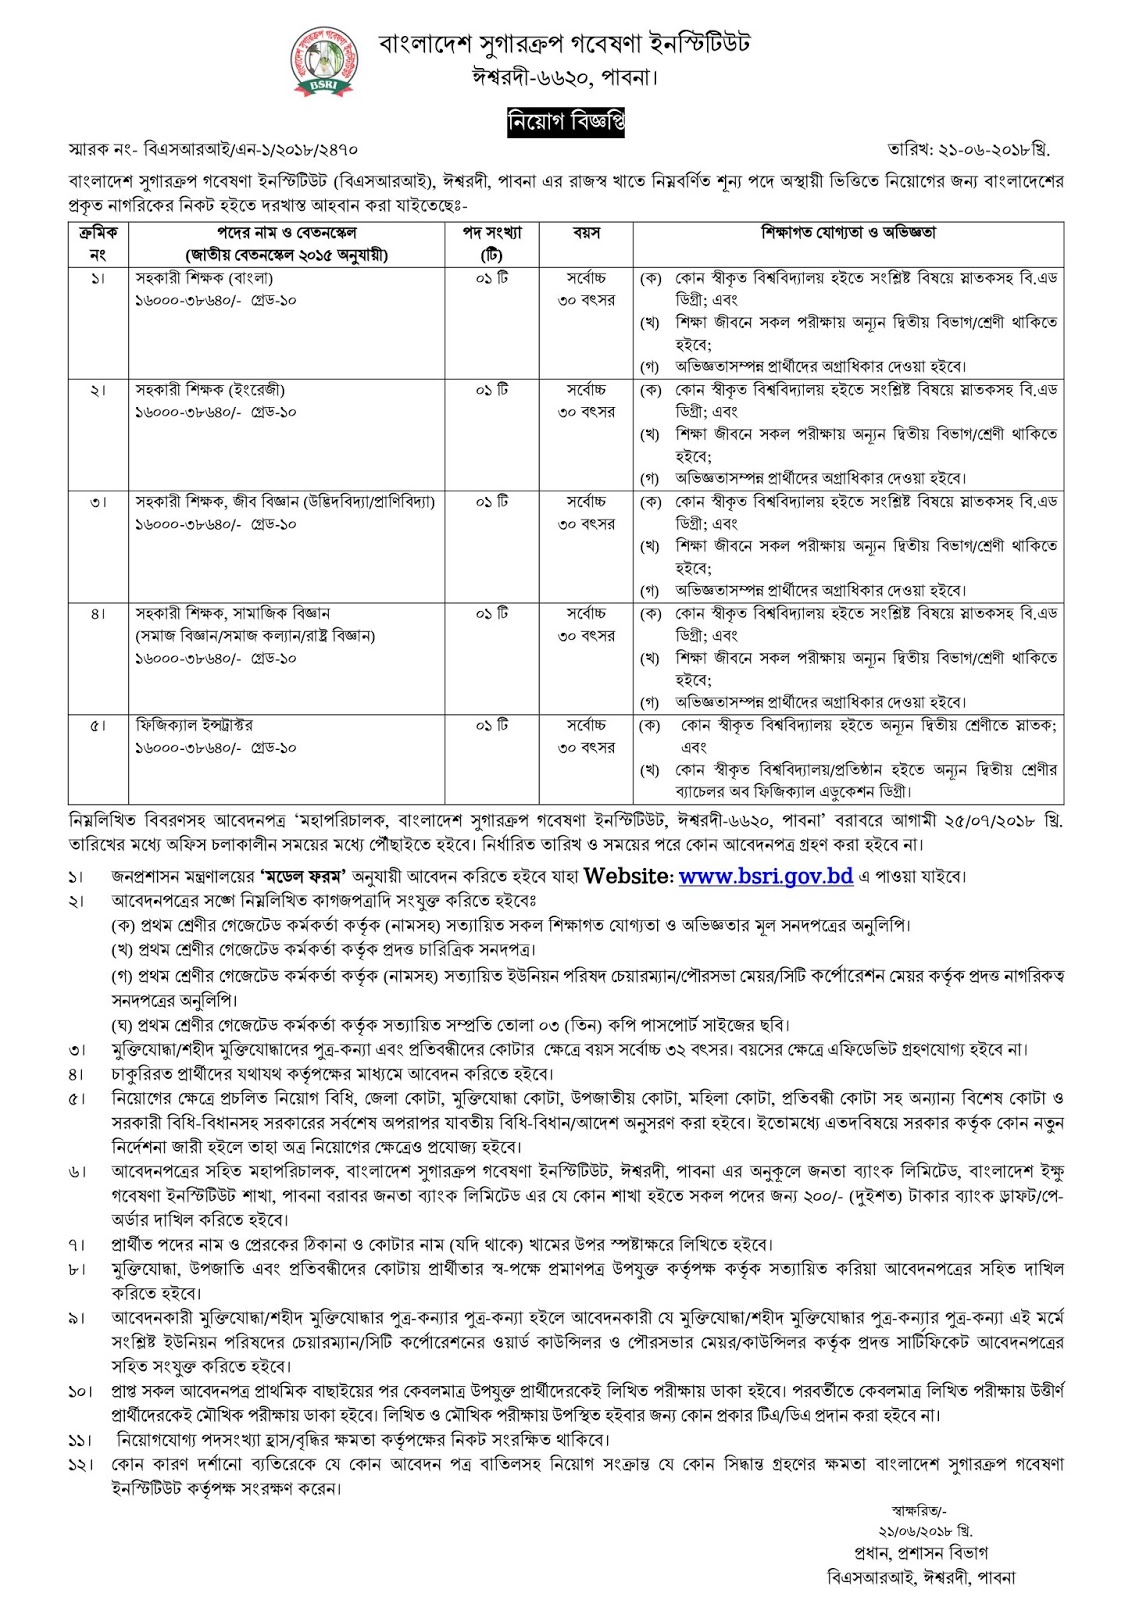 Bangladesh Sugarcrop Research Institute (BSRI) Job Circular 2018